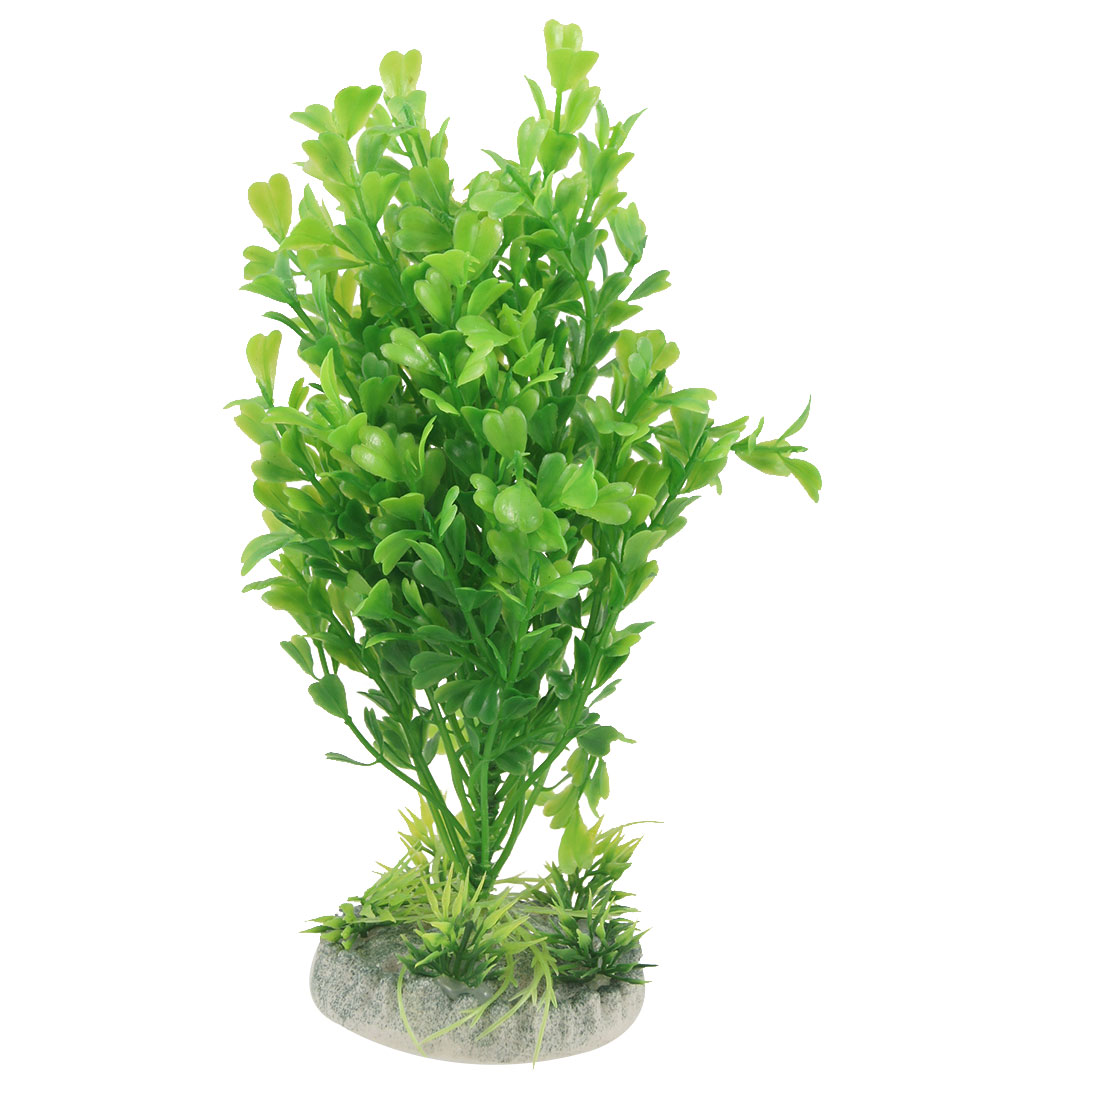 20cm Height Green Plastic Grass Plant Decor w Base for Aquarium